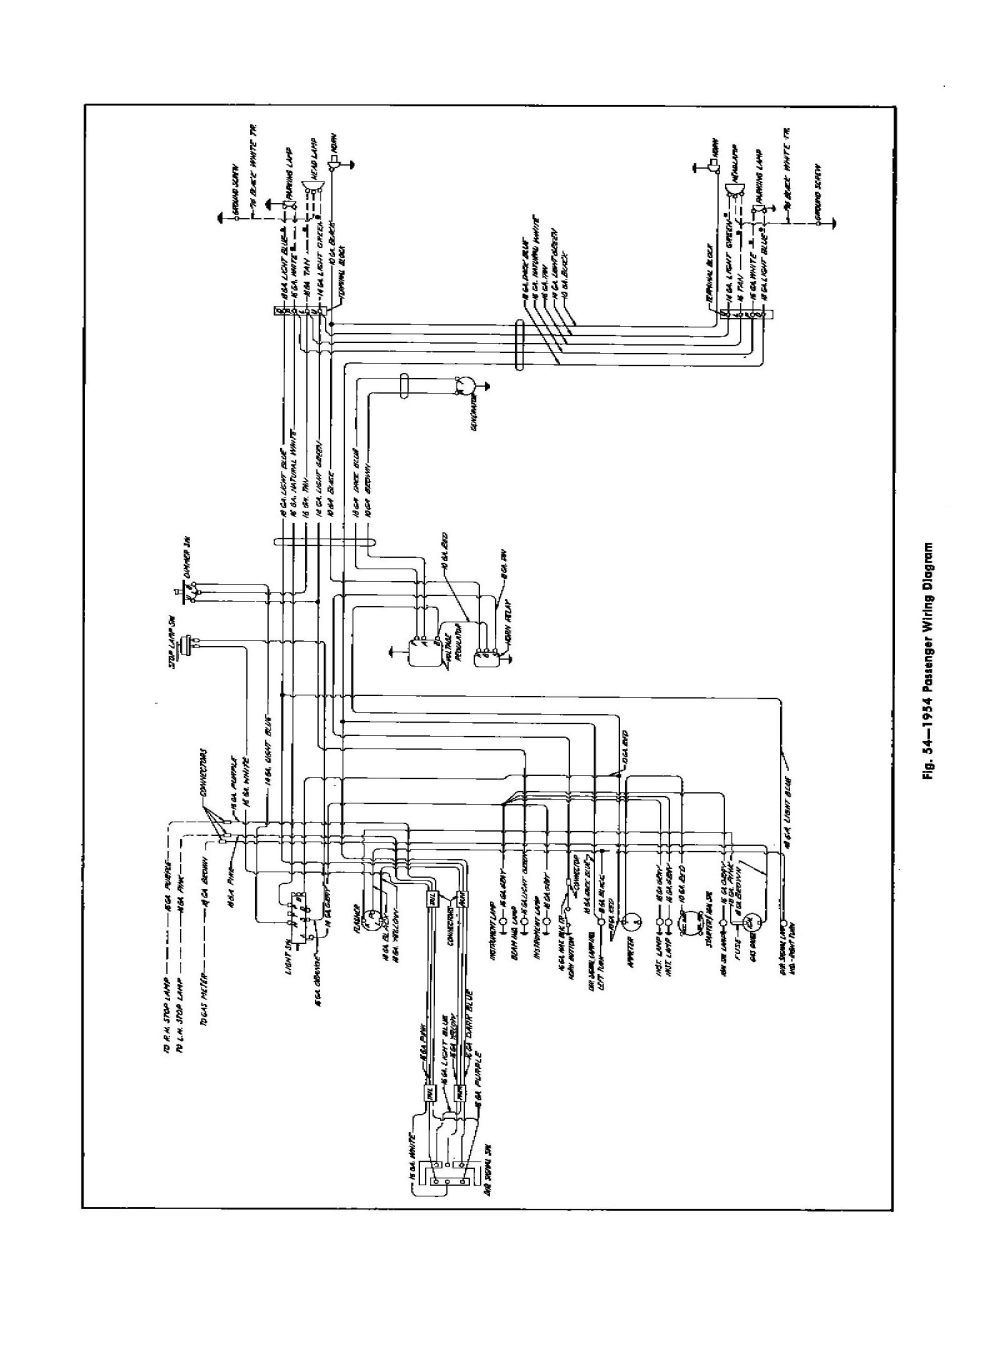 medium resolution of 1953 chevy truck wiring harness wiring diagram 54 chevy truck wiring harness